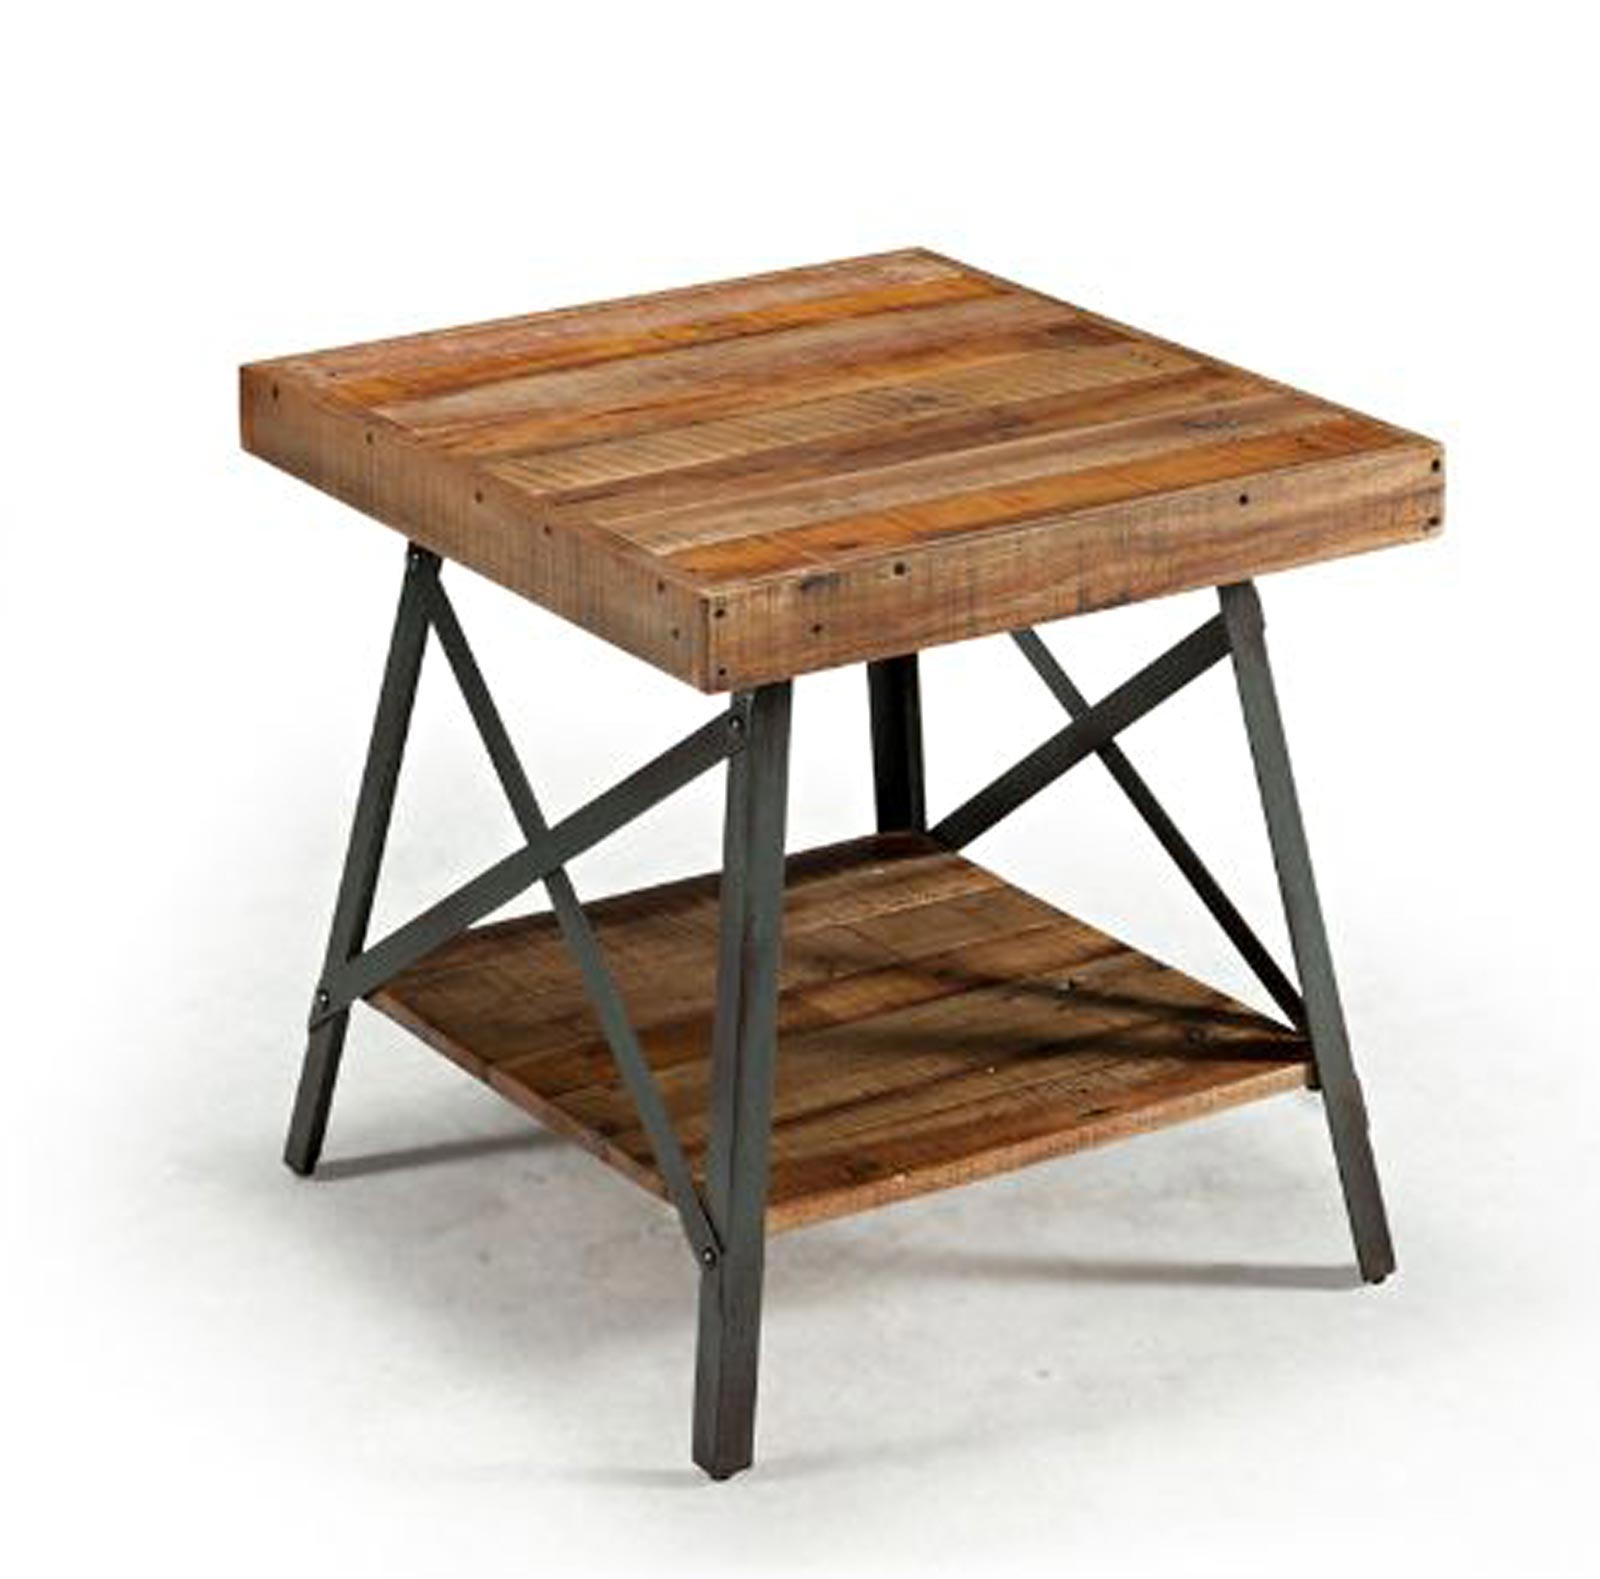 mango wood accent table the terrific awesome berwyn end metal and tables home design ideas tures rustic side wooden reclaimed diy industrial iron plans dyi brown threshold glass